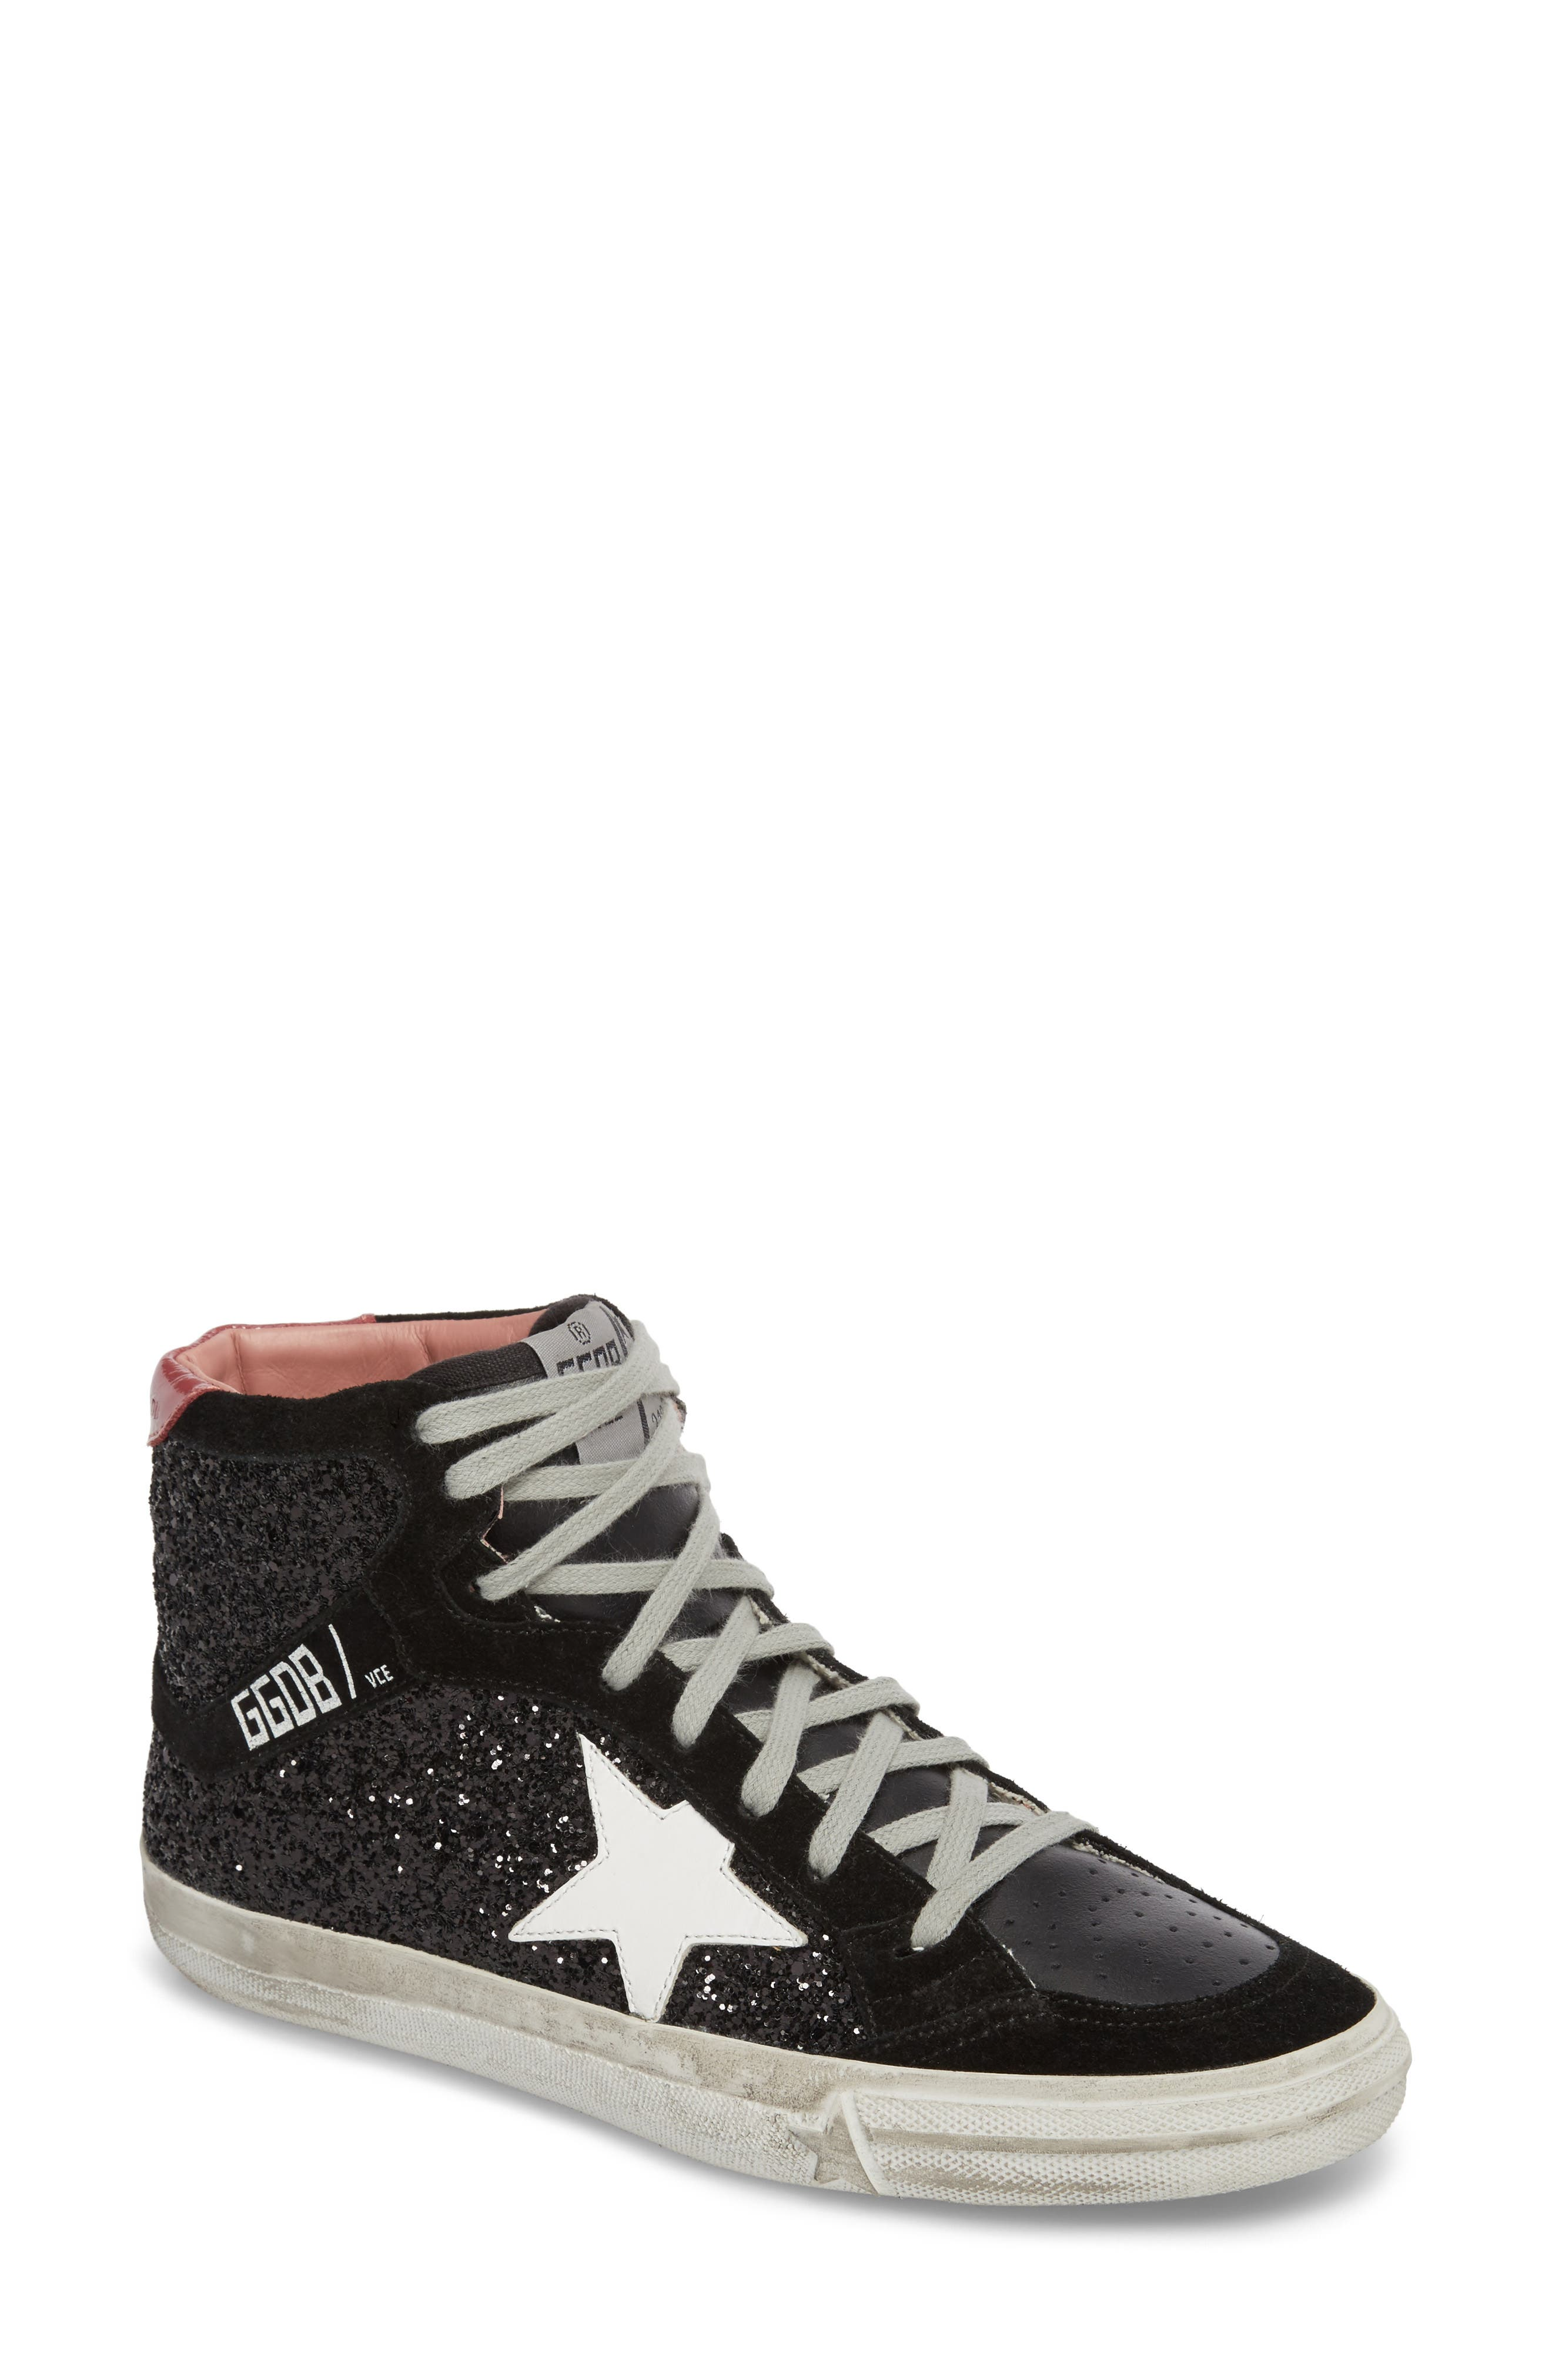 2.12 Star High Top Sneaker,                             Main thumbnail 1, color,                             Black